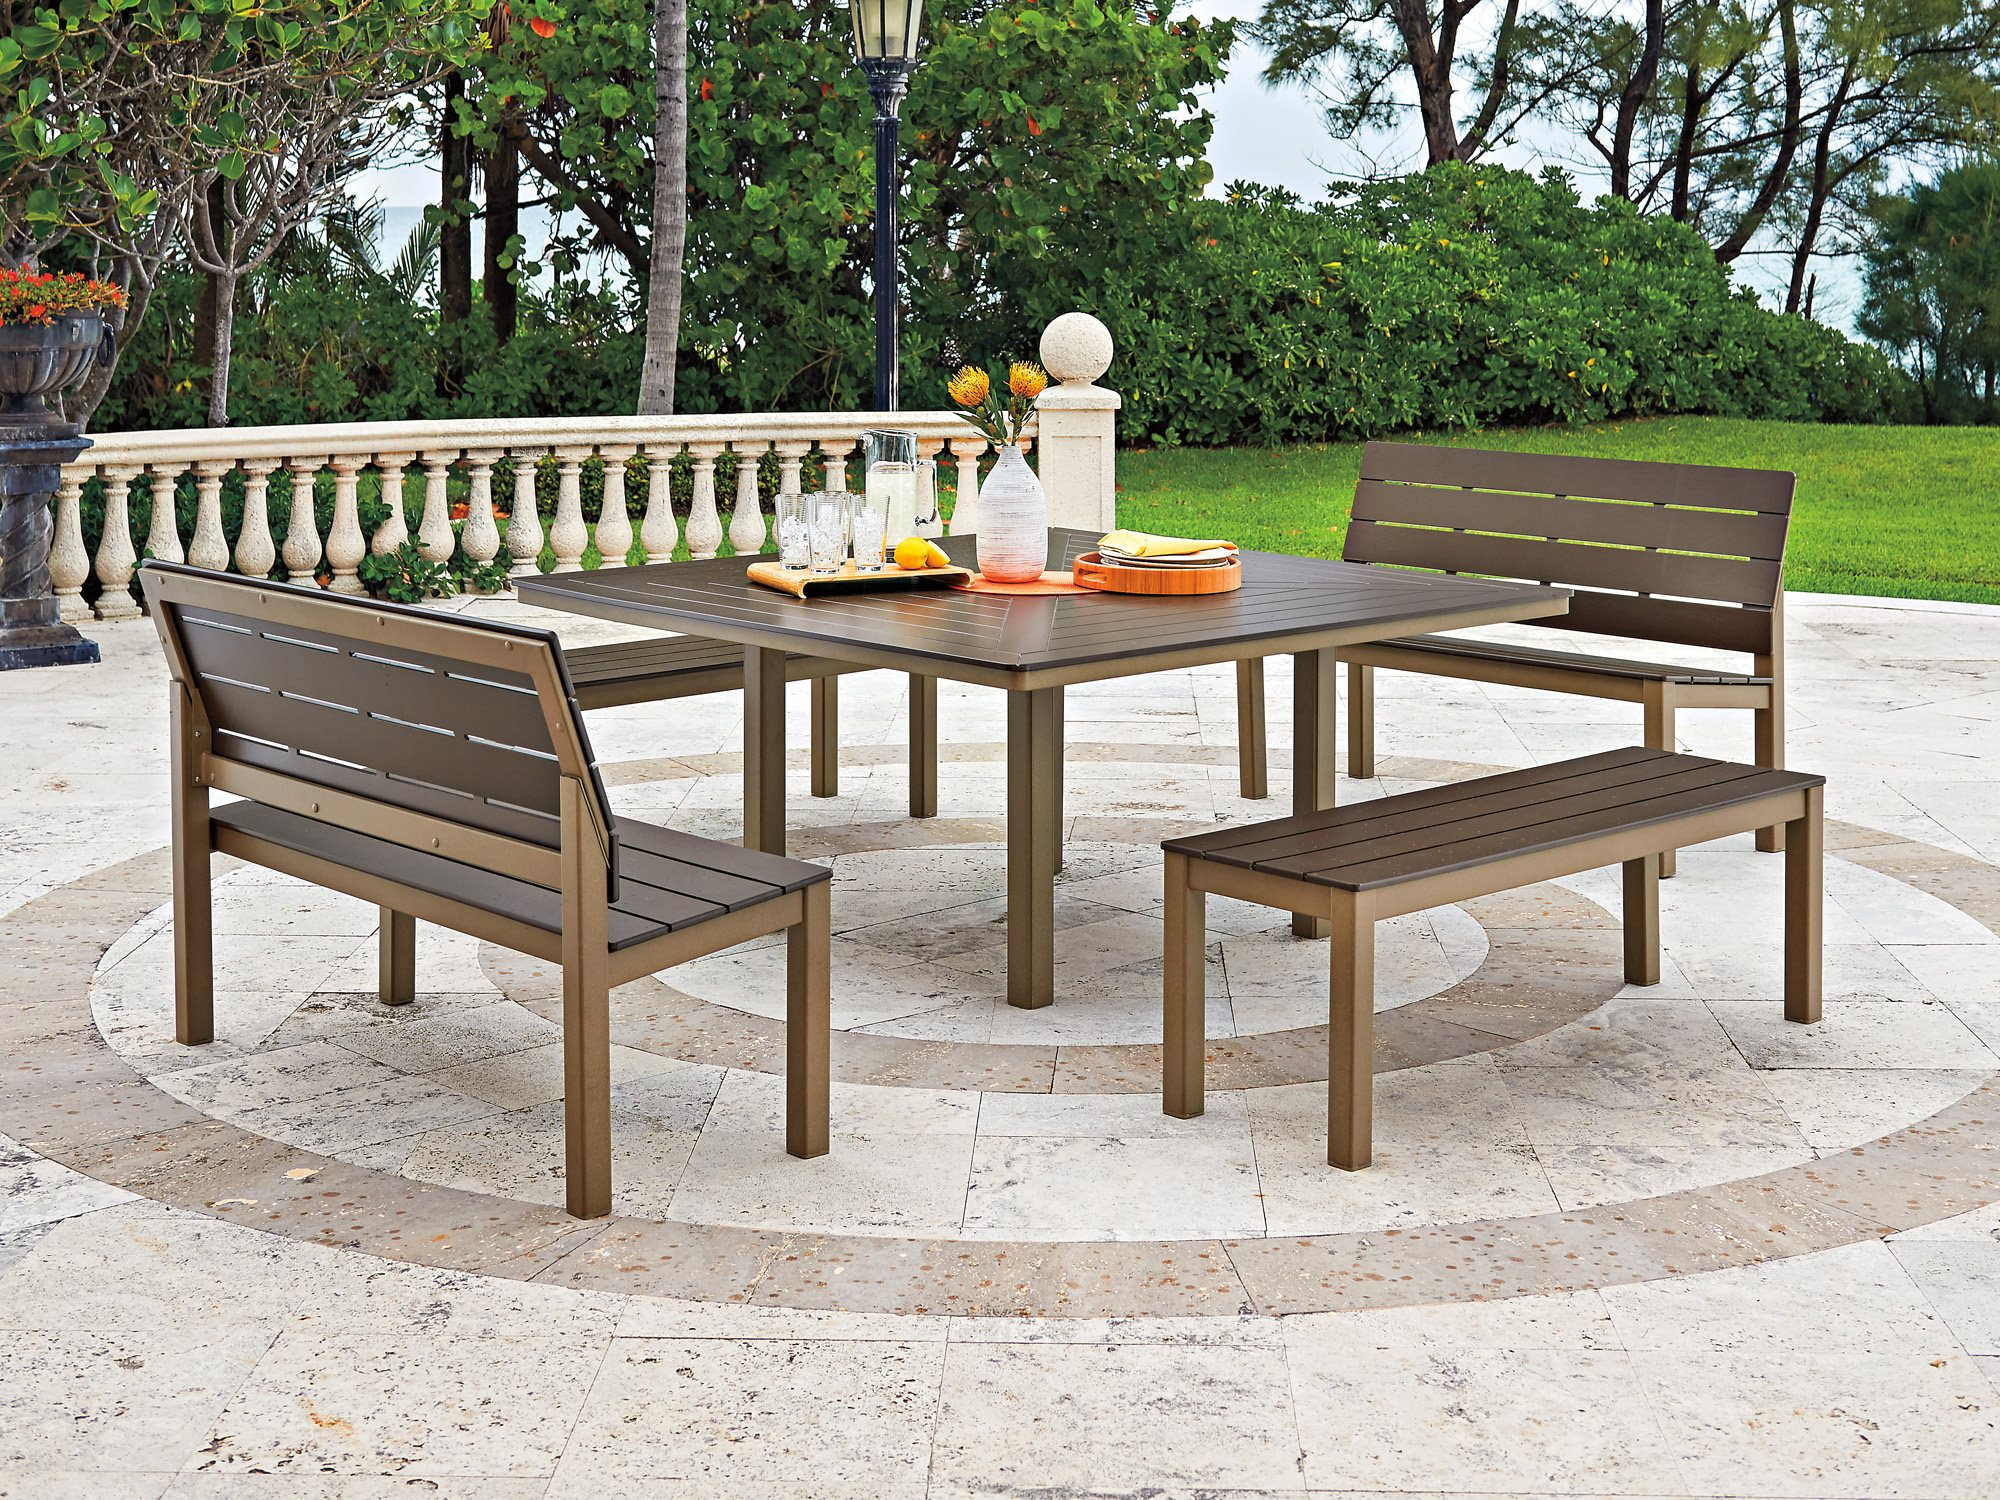 Patio furniture plus coupons near me in ontario 8coupons for Patio furniture near me